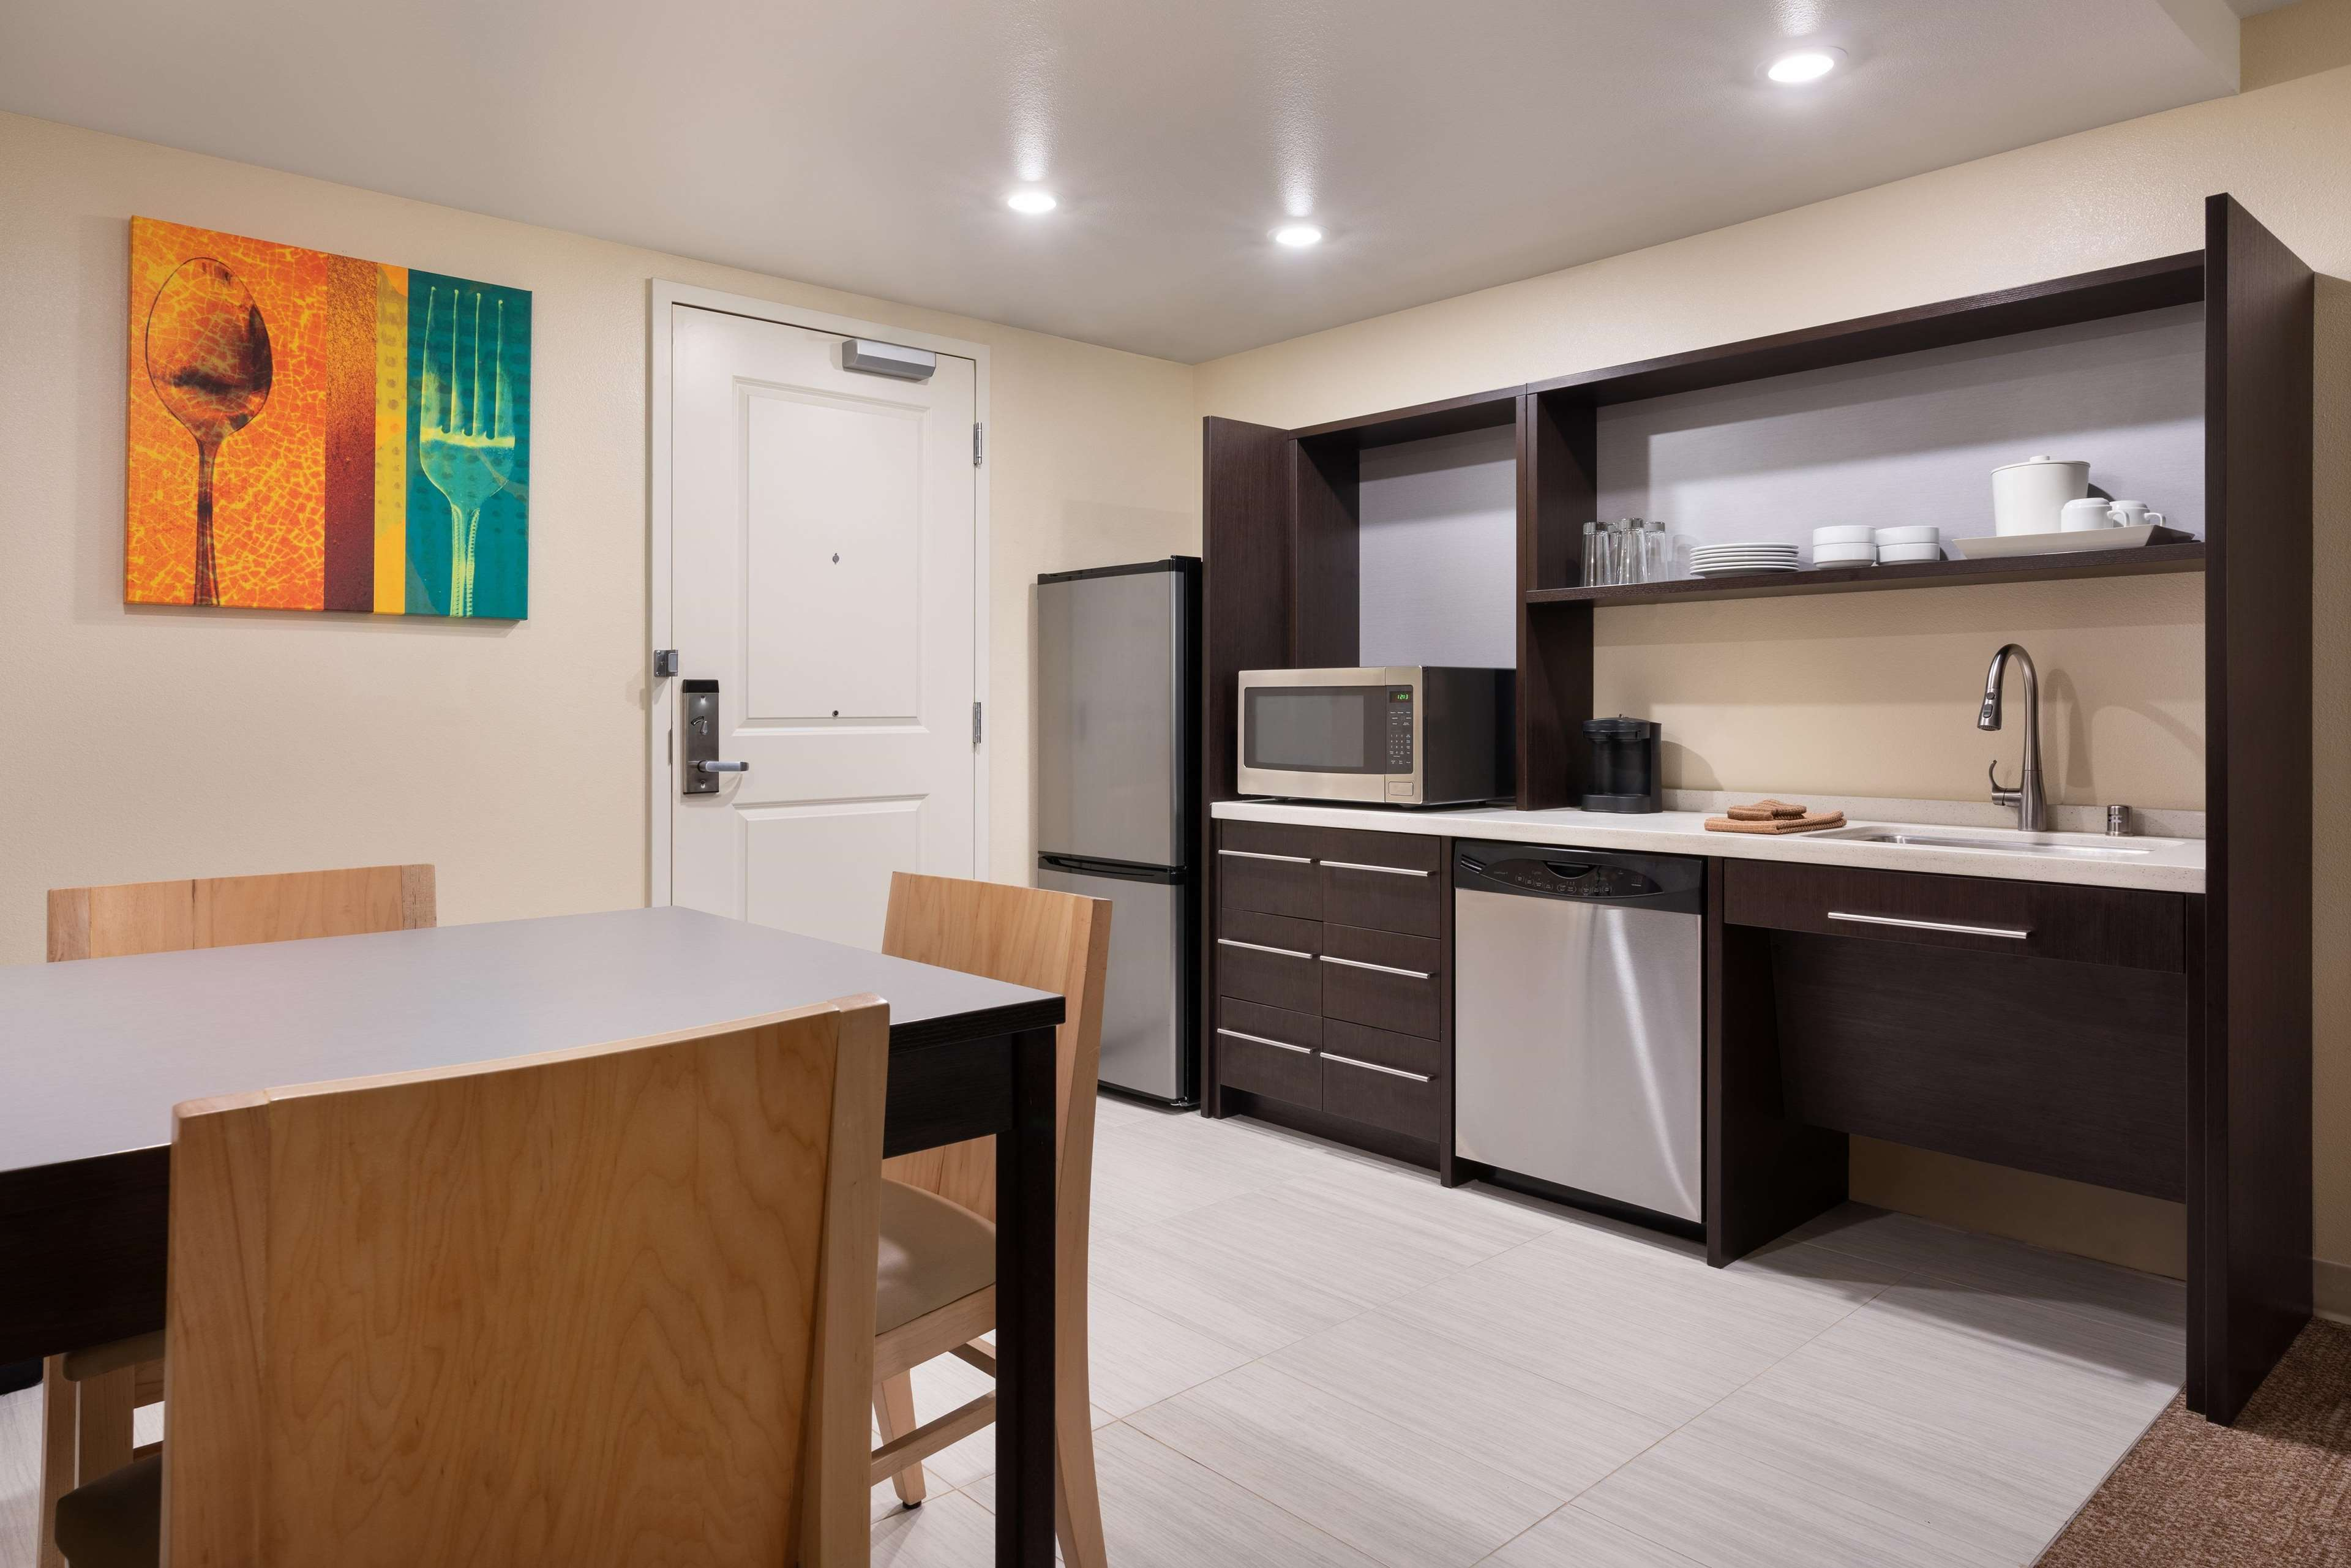 Home2 Suites by Hilton Anchorage/Midtown image 24